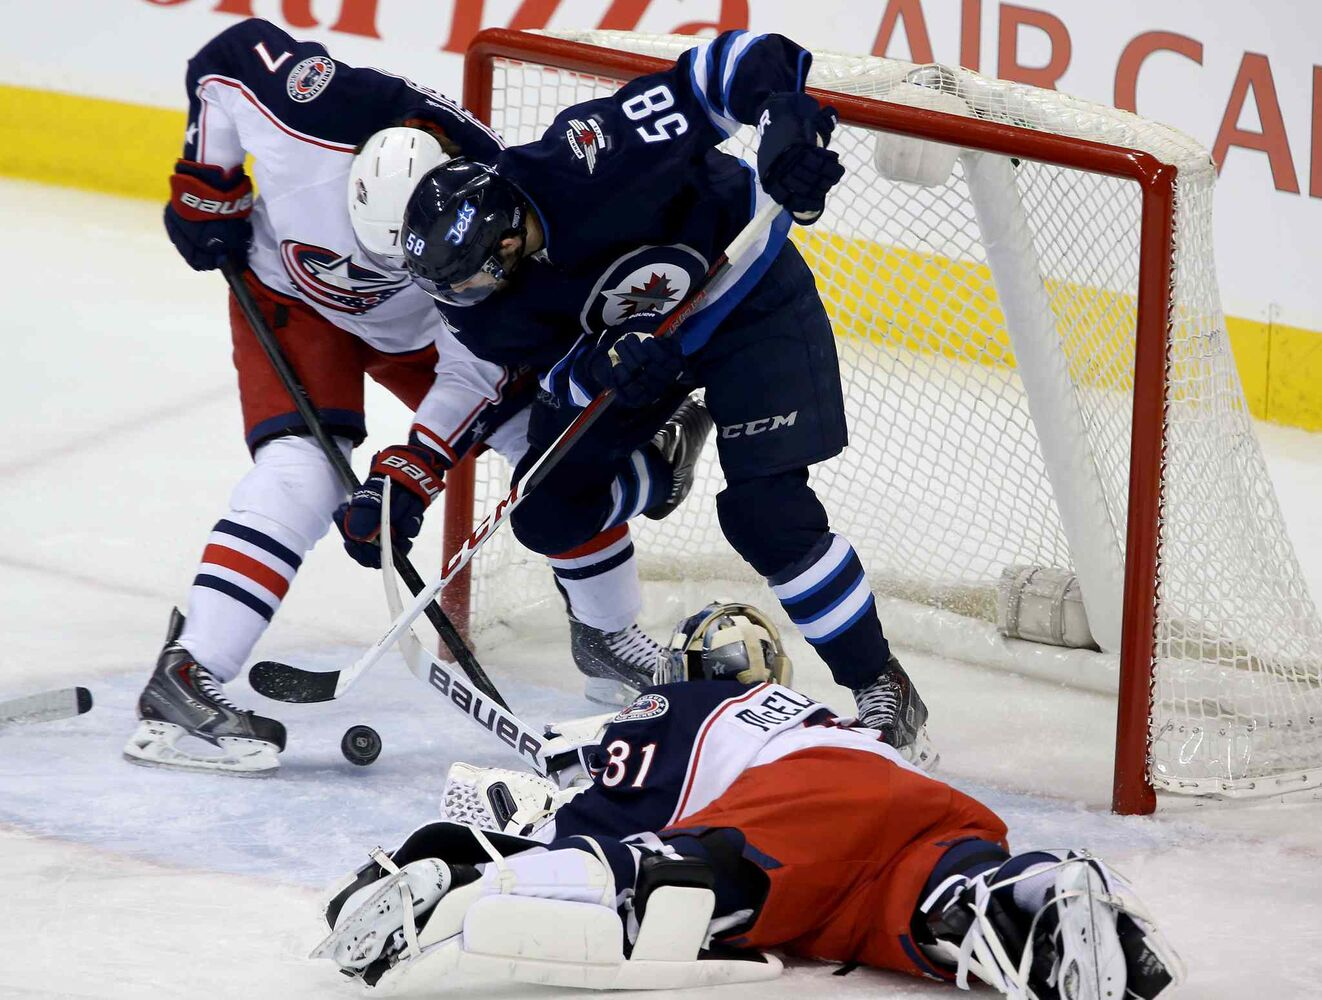 Columbus Blue Jackets' Jack Johnson (7) battles with Winnipeg Jets' Eric O'Dell (58) in the crease behind goaltender Curtis McElhinney (31). Then, O'Dell manages to put the puck in the net for his first career NHL goal during first period Saturday. (Trevor Hagan / Winnipeg Free Press)